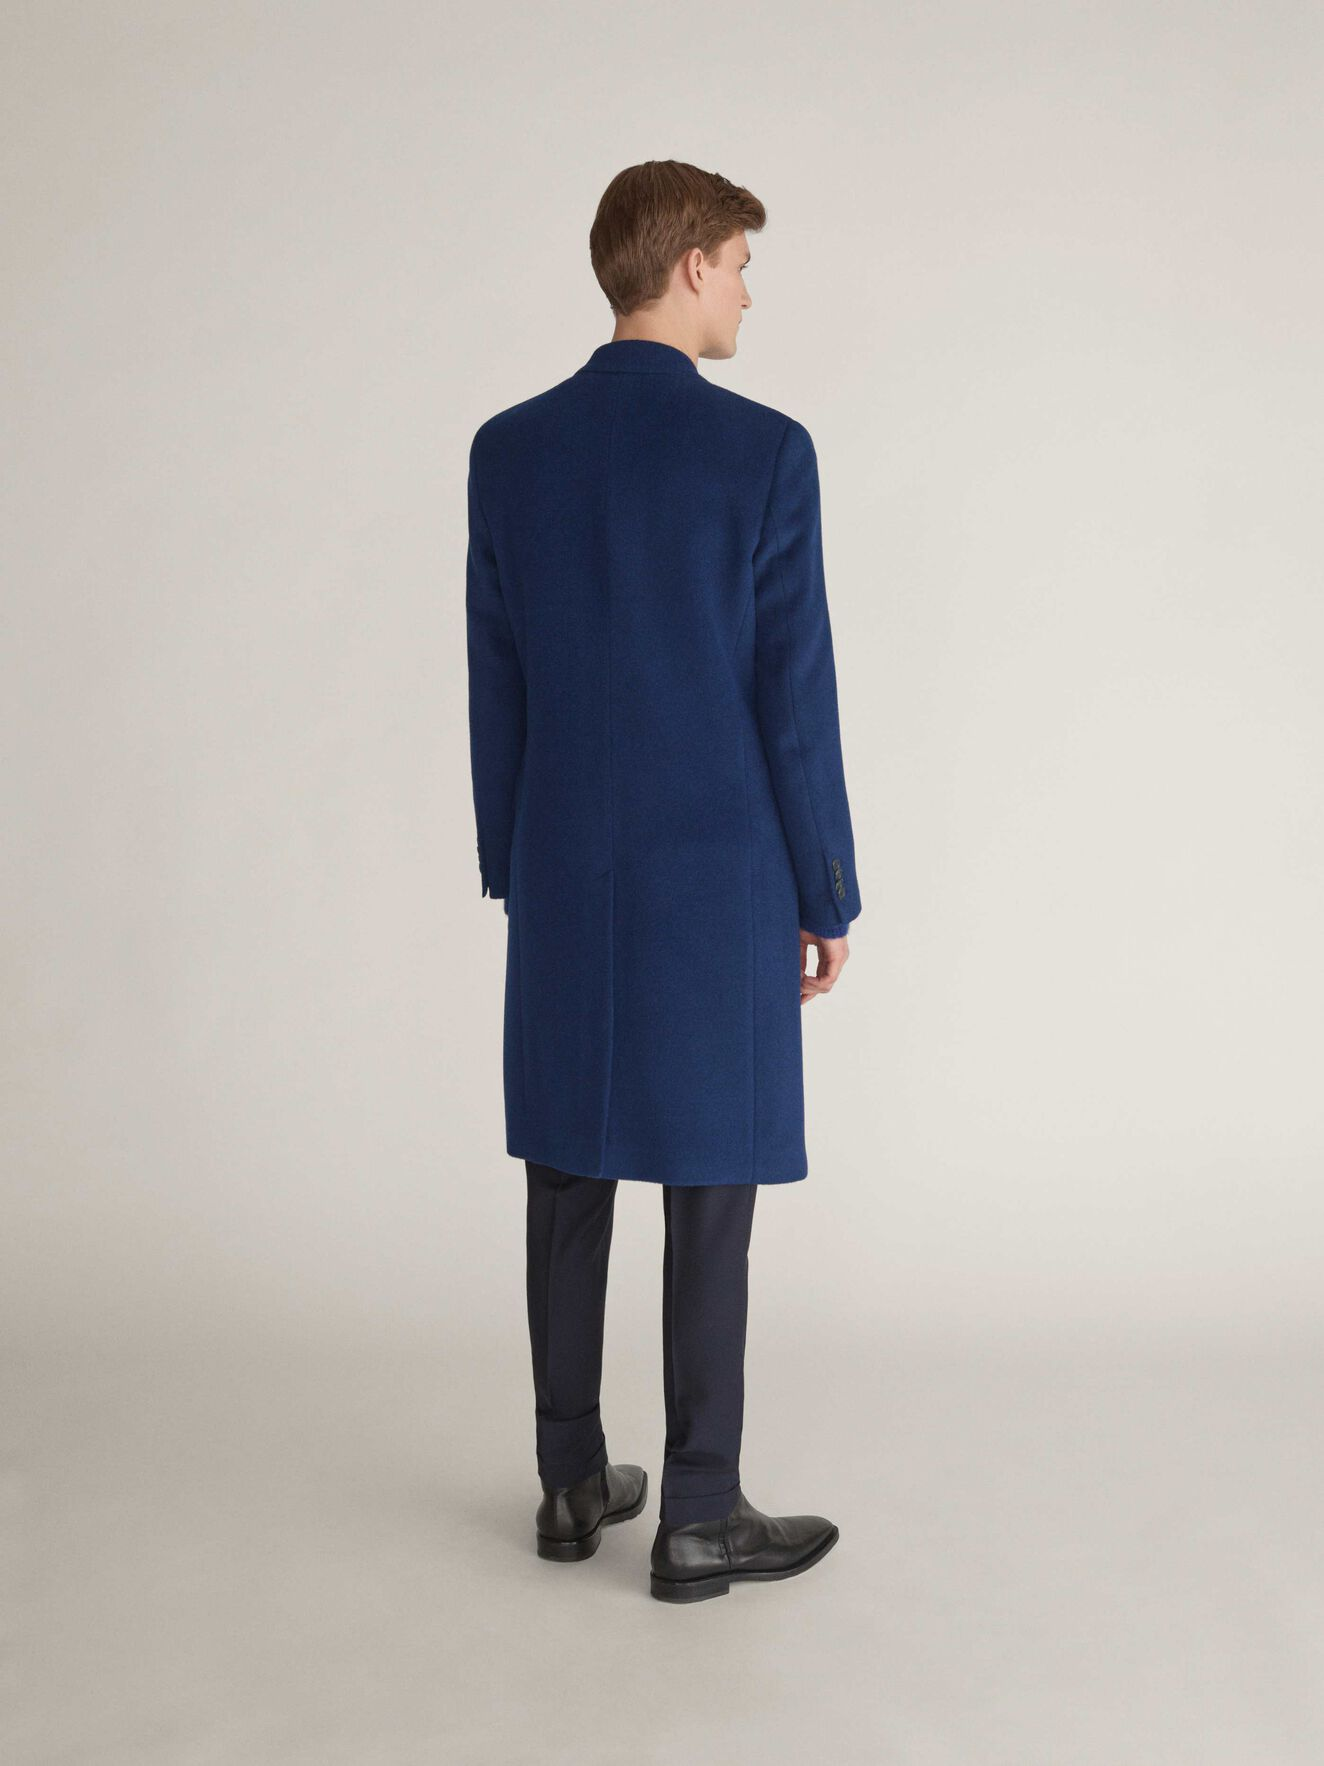 Coltron Coat in Pop Blue from Tiger of Sweden